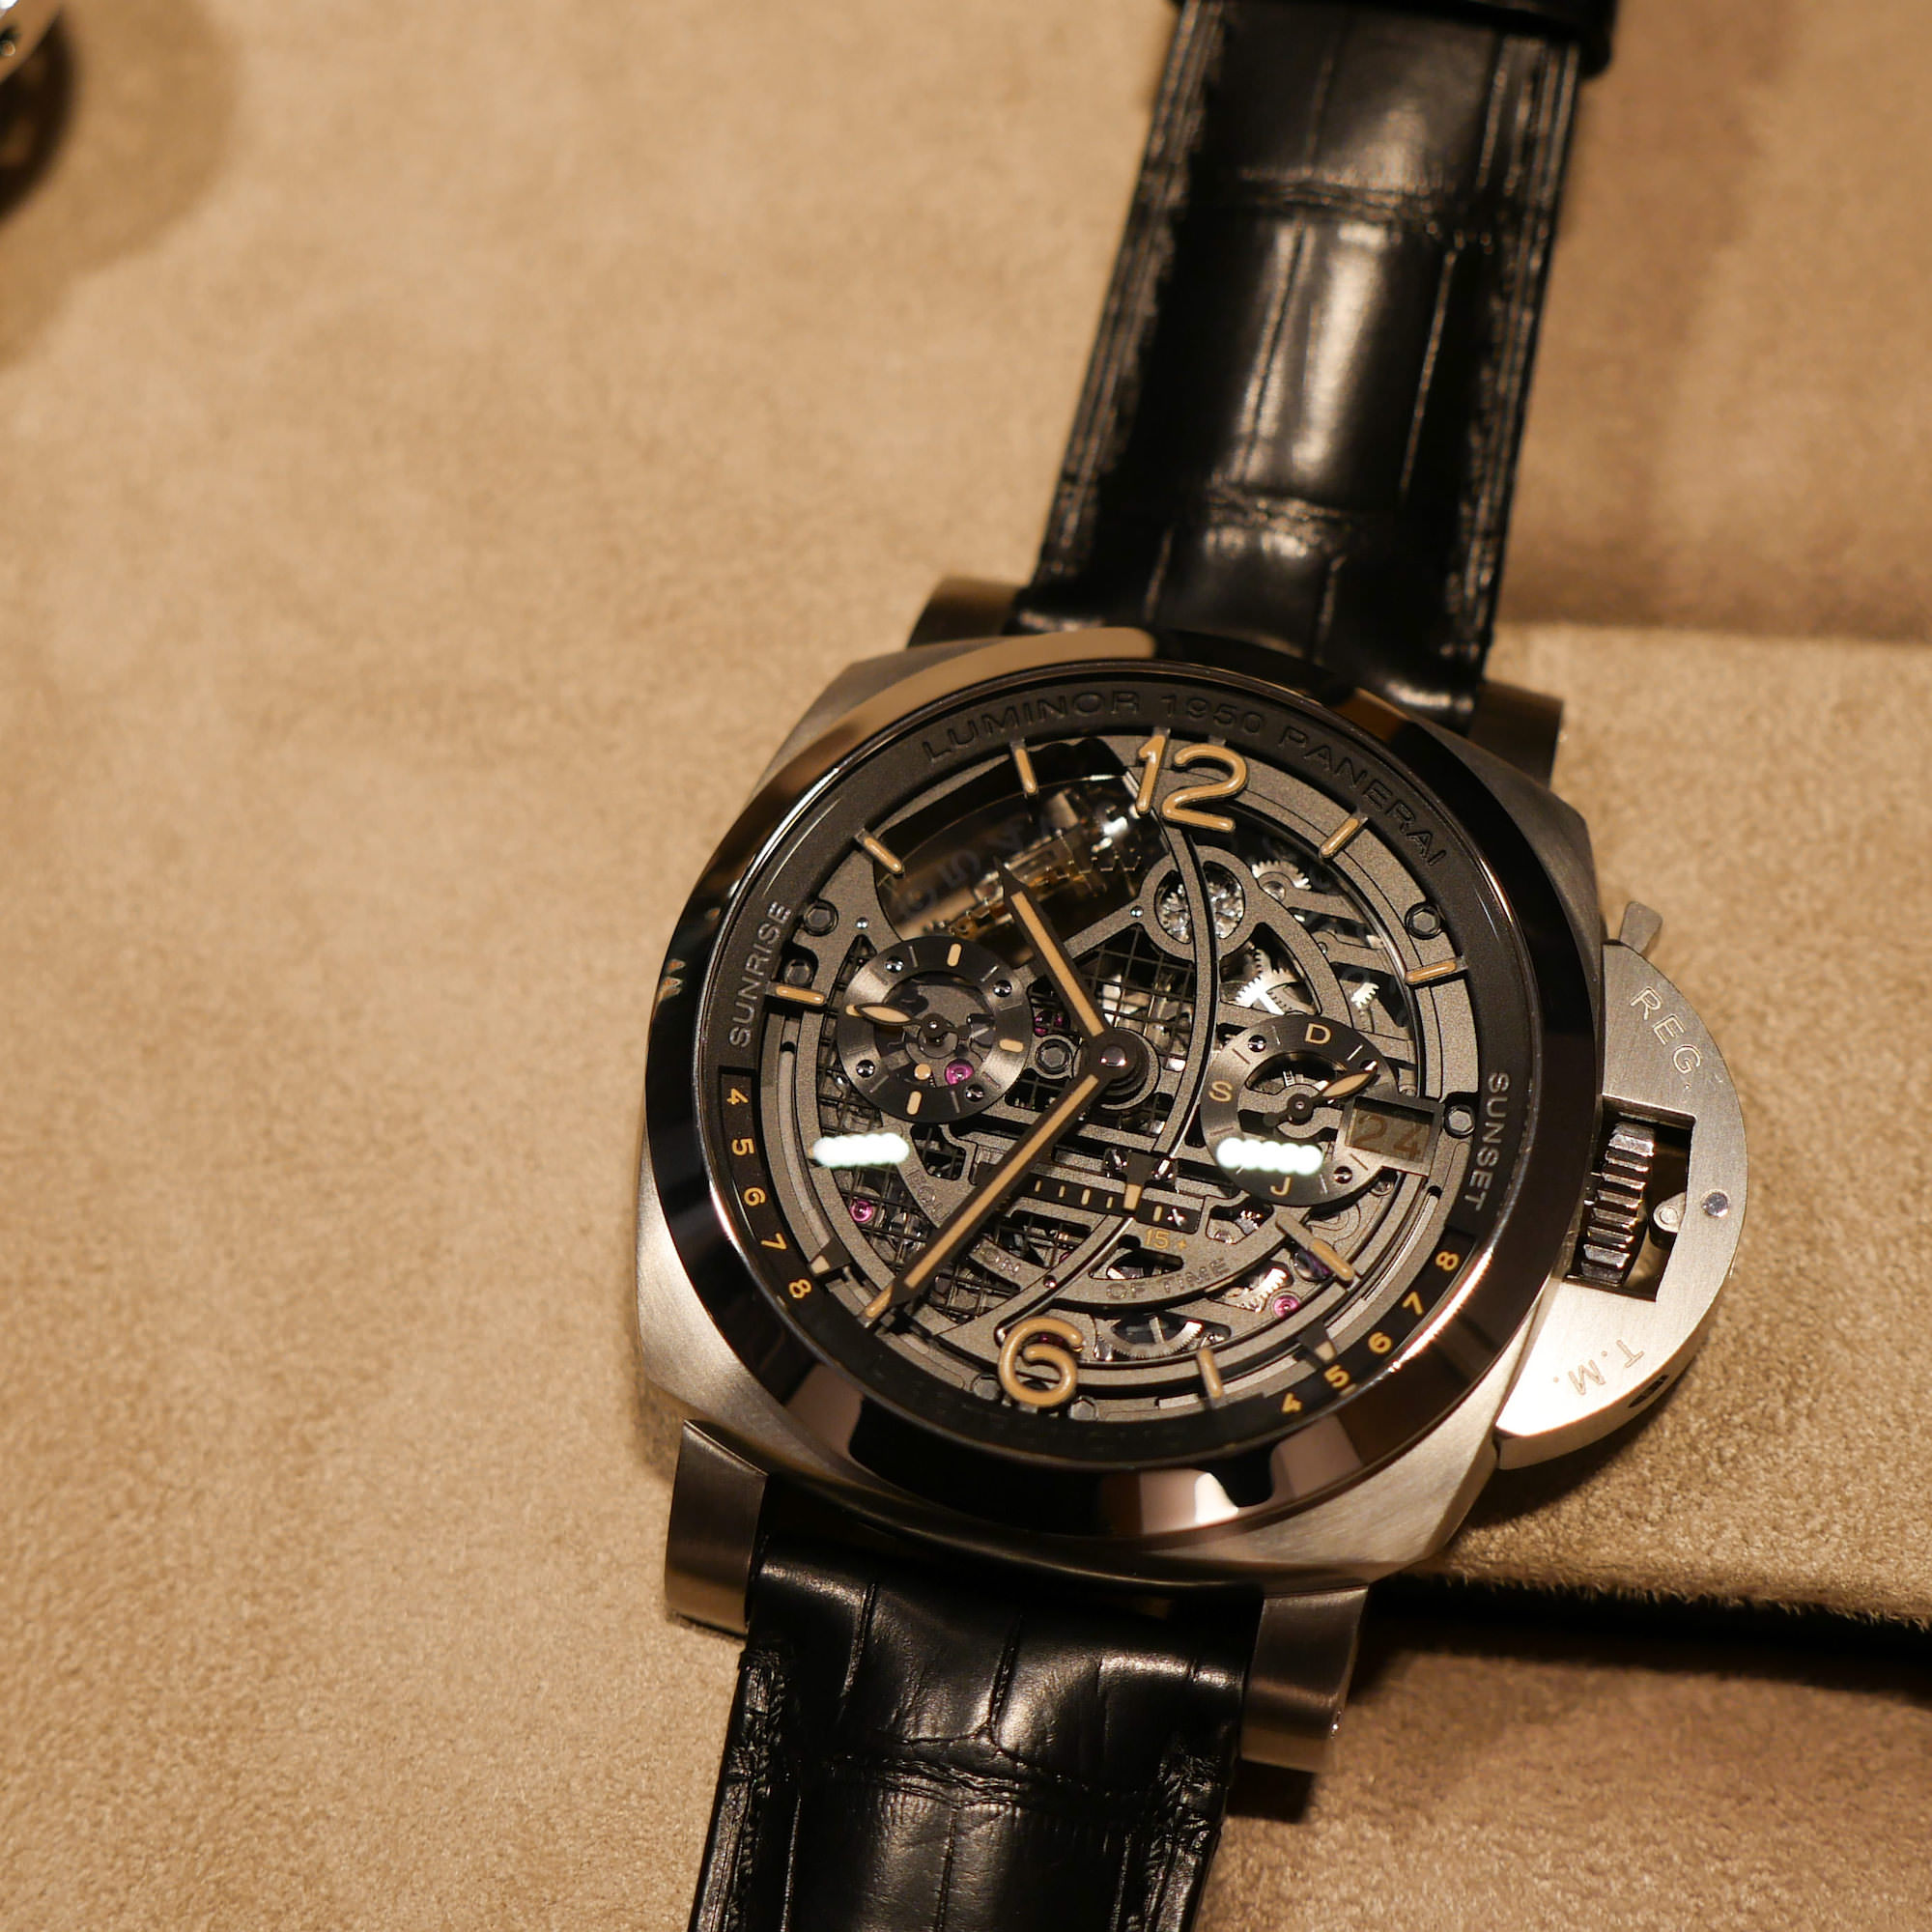 Astronomo Luminor 1950, Tourbillon Phase de Lune, GMT, 50mm face